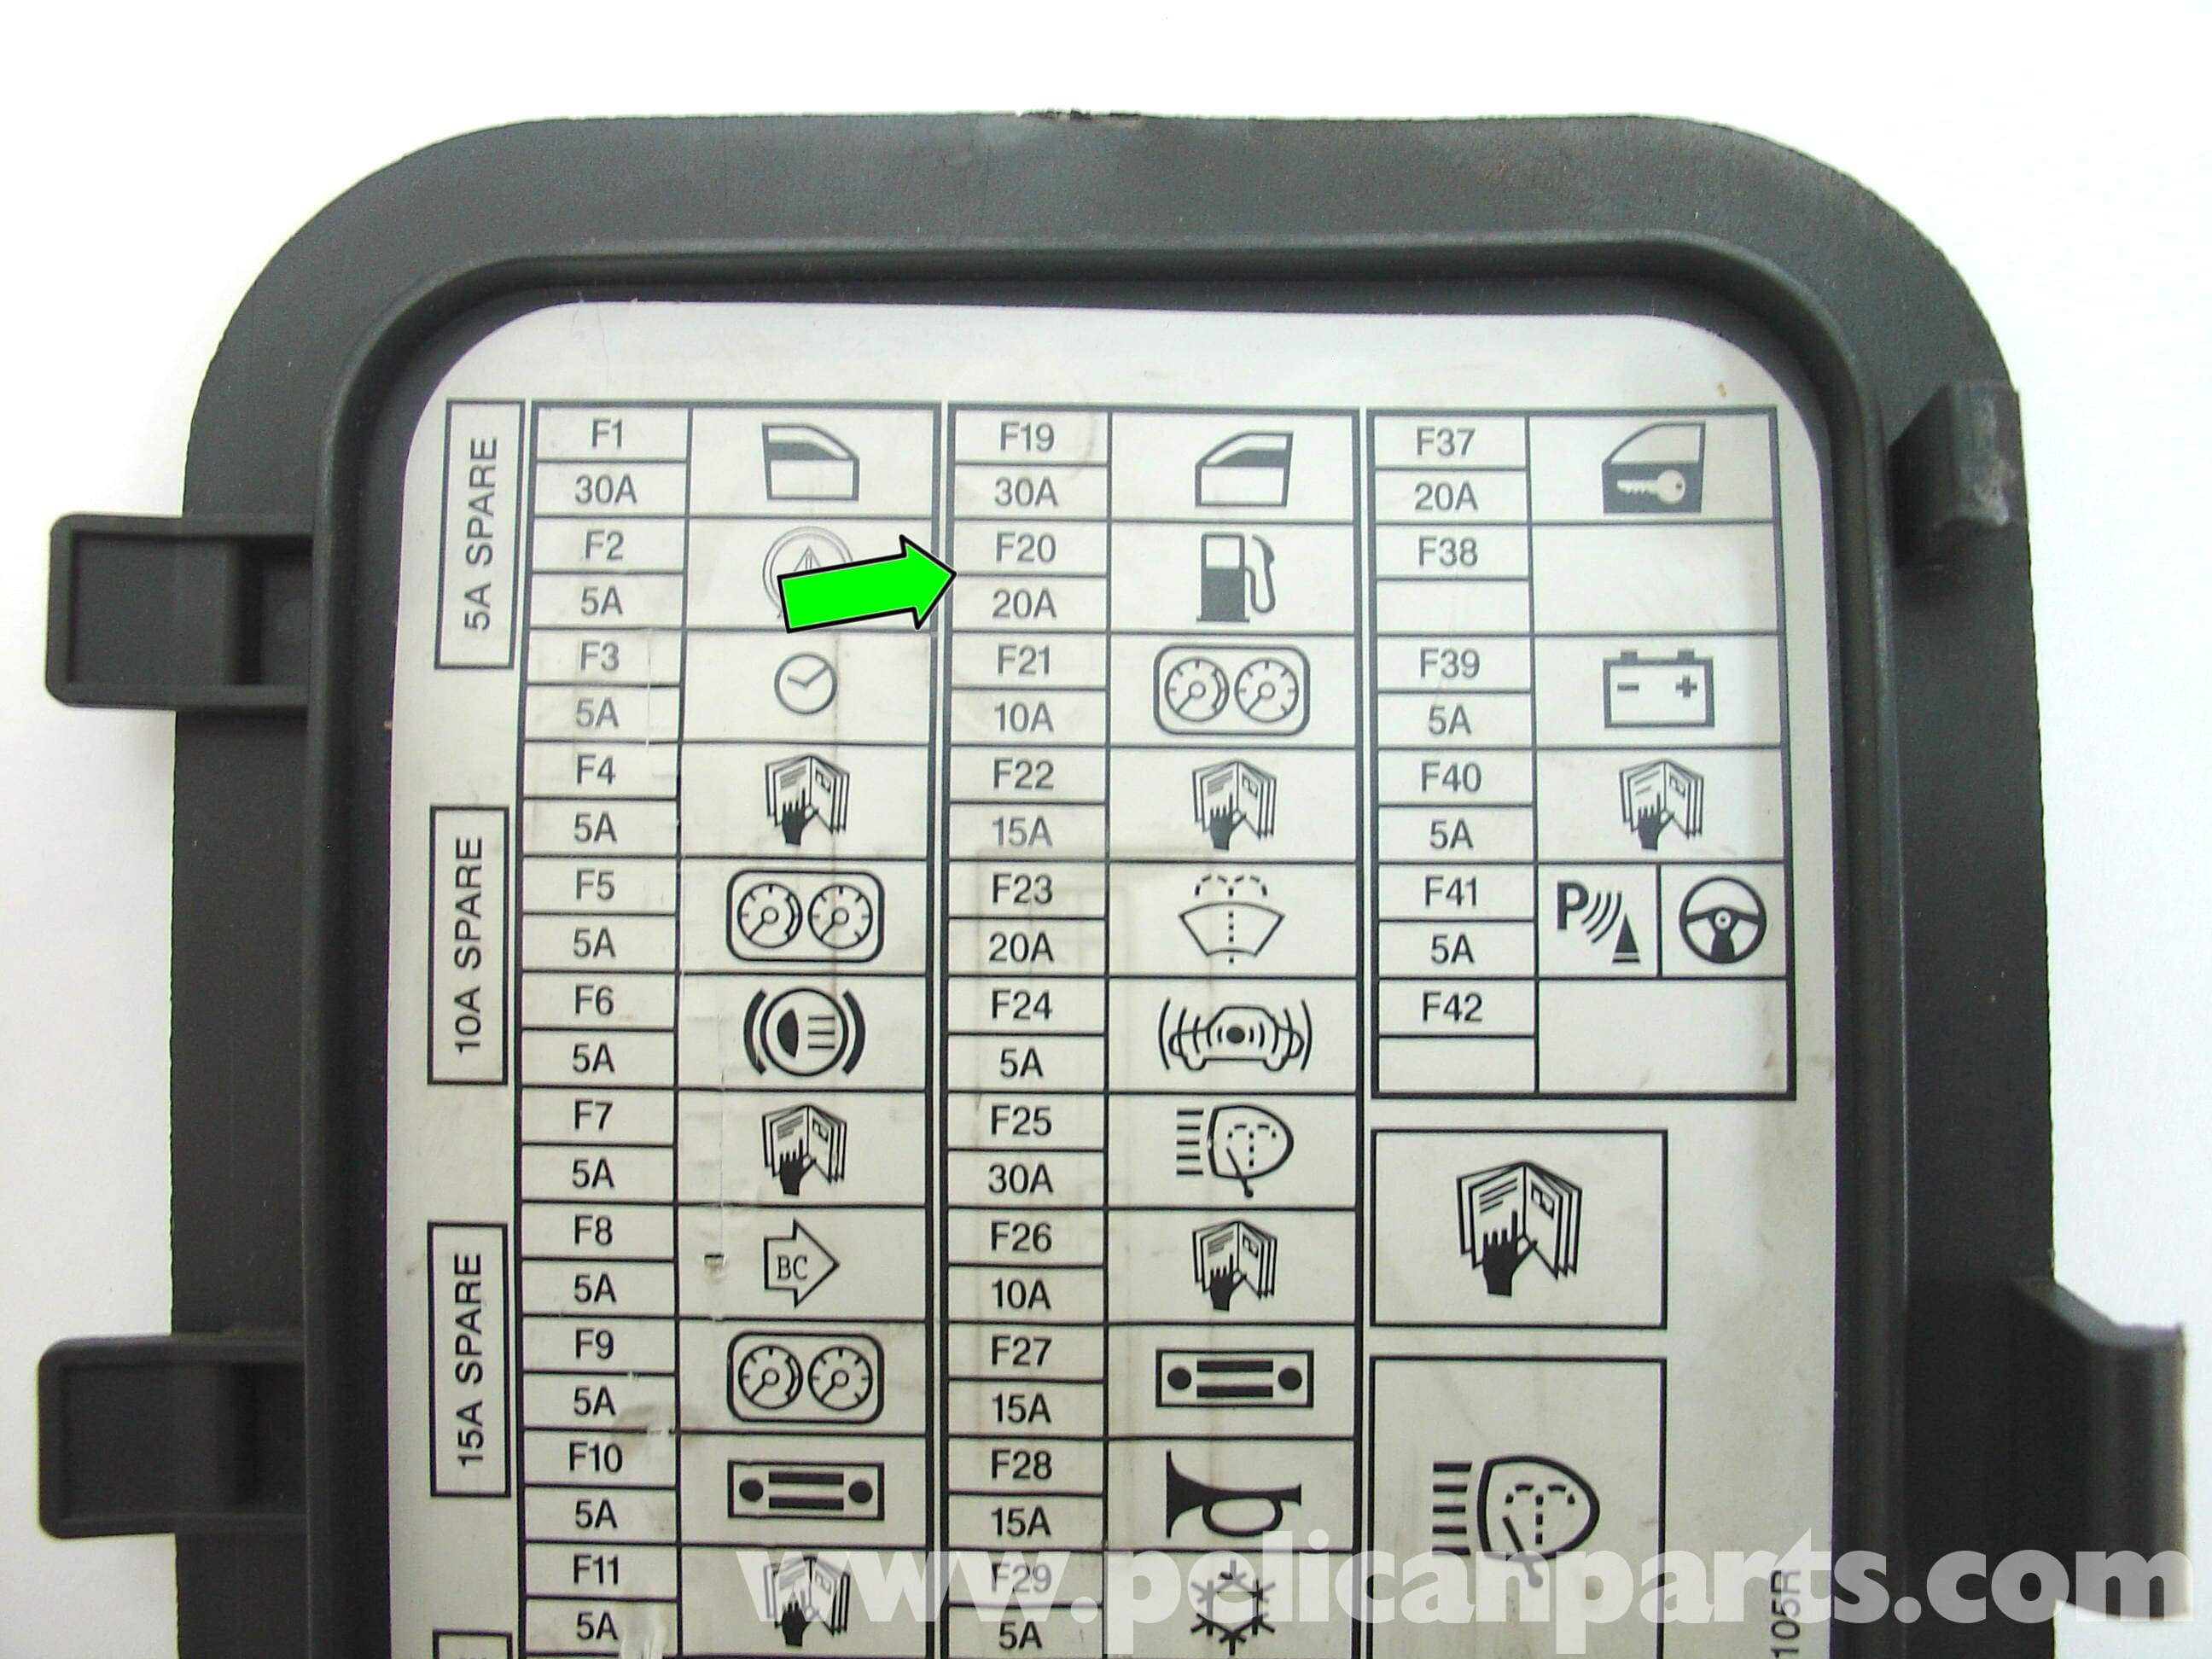 2003 Mini Cooper Fuse Diagram Simple Wiring Page Diagrams Additionally For Bulldog Remote Start 2005 Automotive Cruise Control